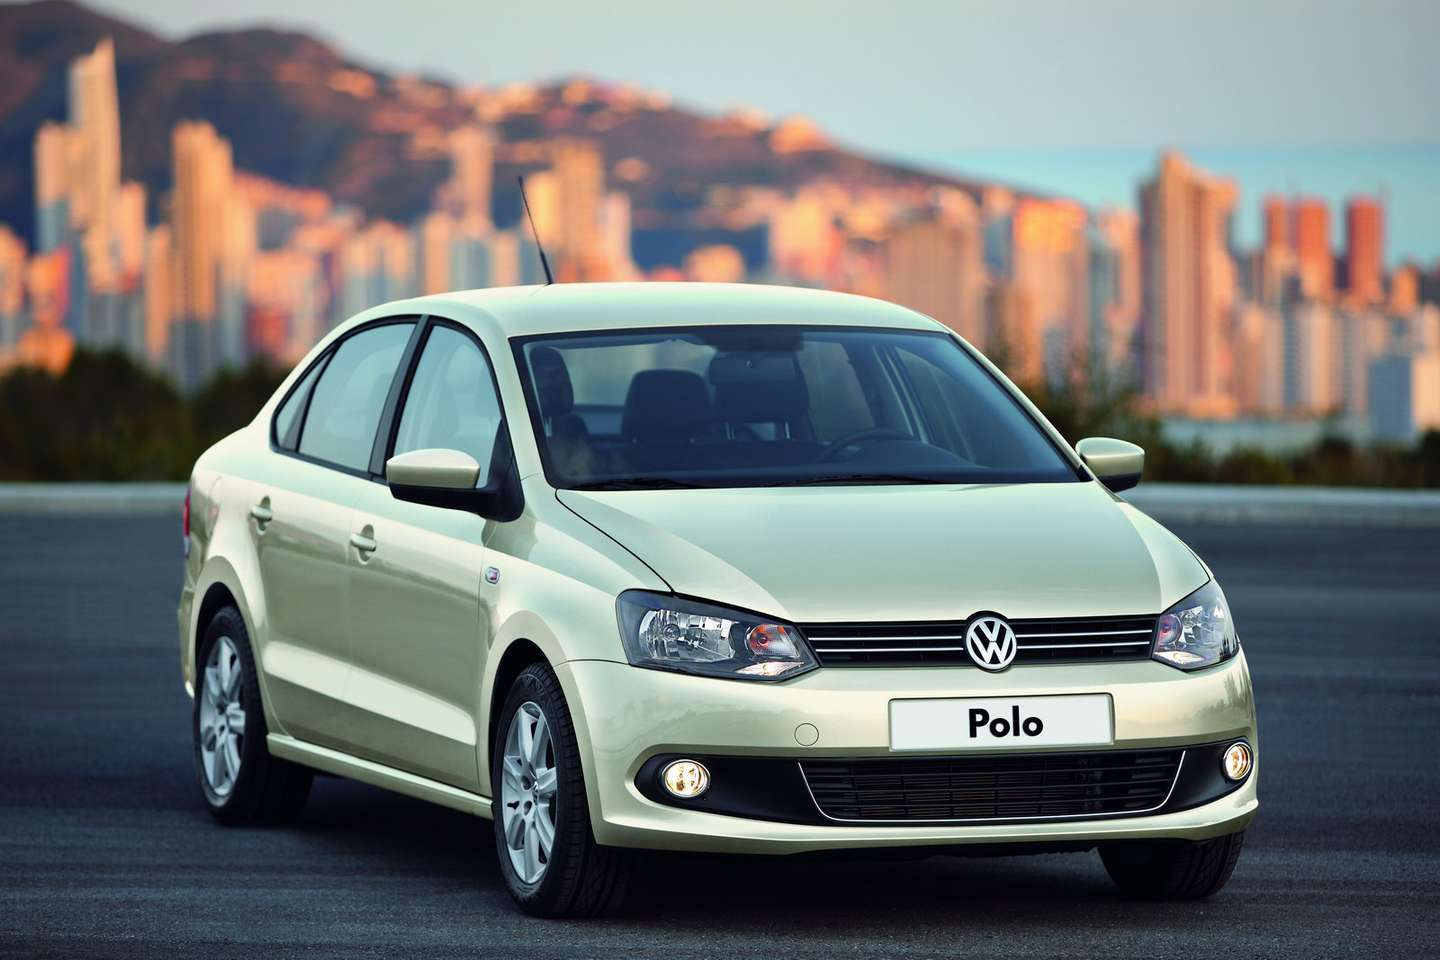 Volkswagen Polo Sedan #7191515